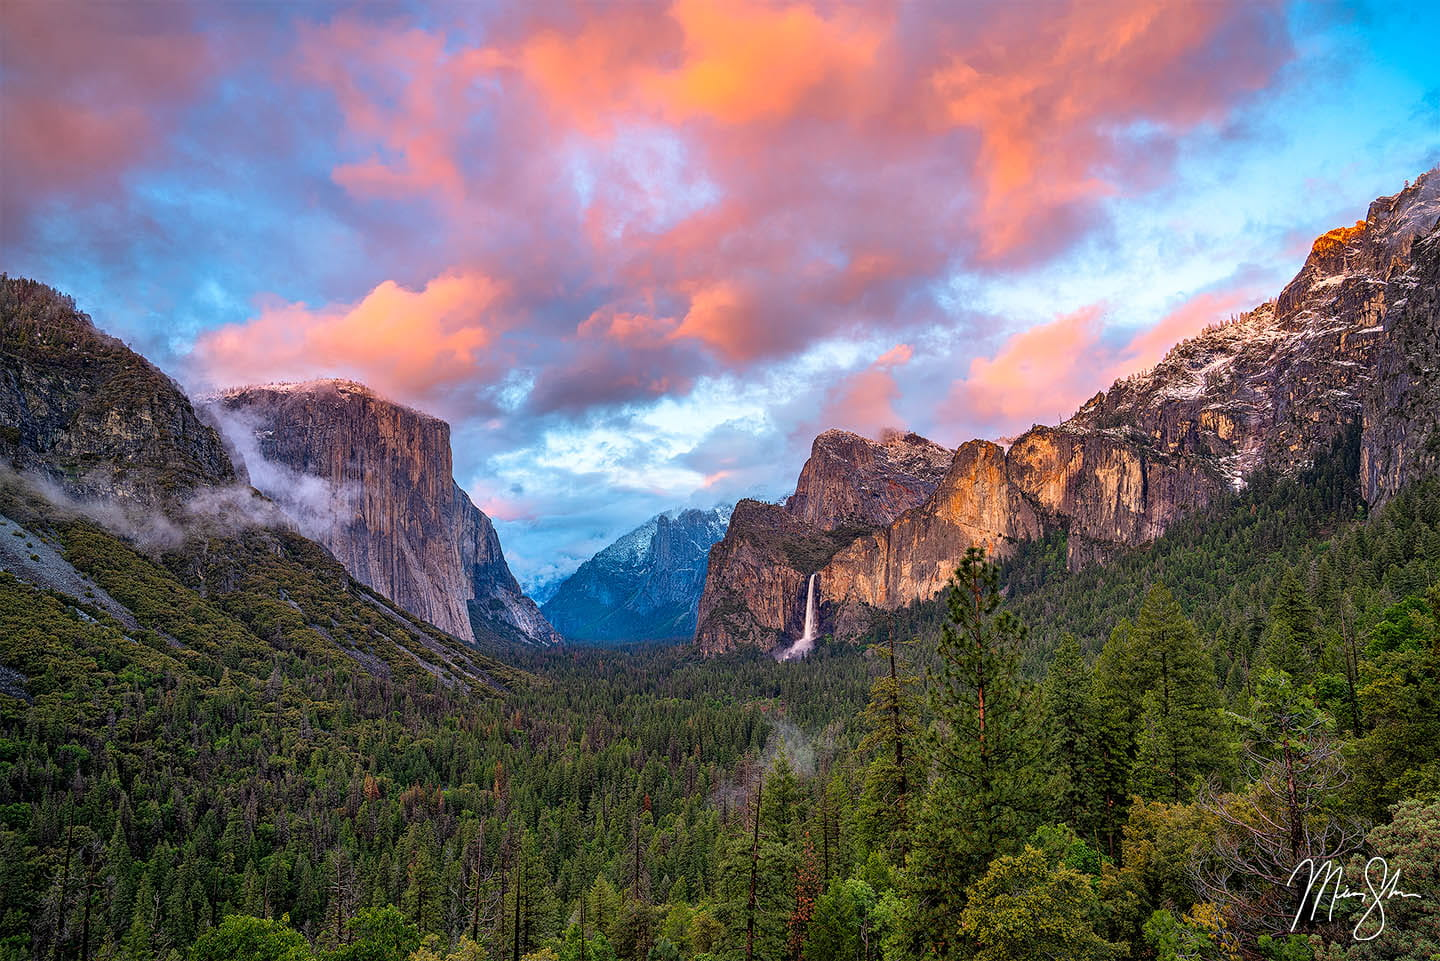 Mountain photography: Tunnel View Sunset, Yosemite National Park, California